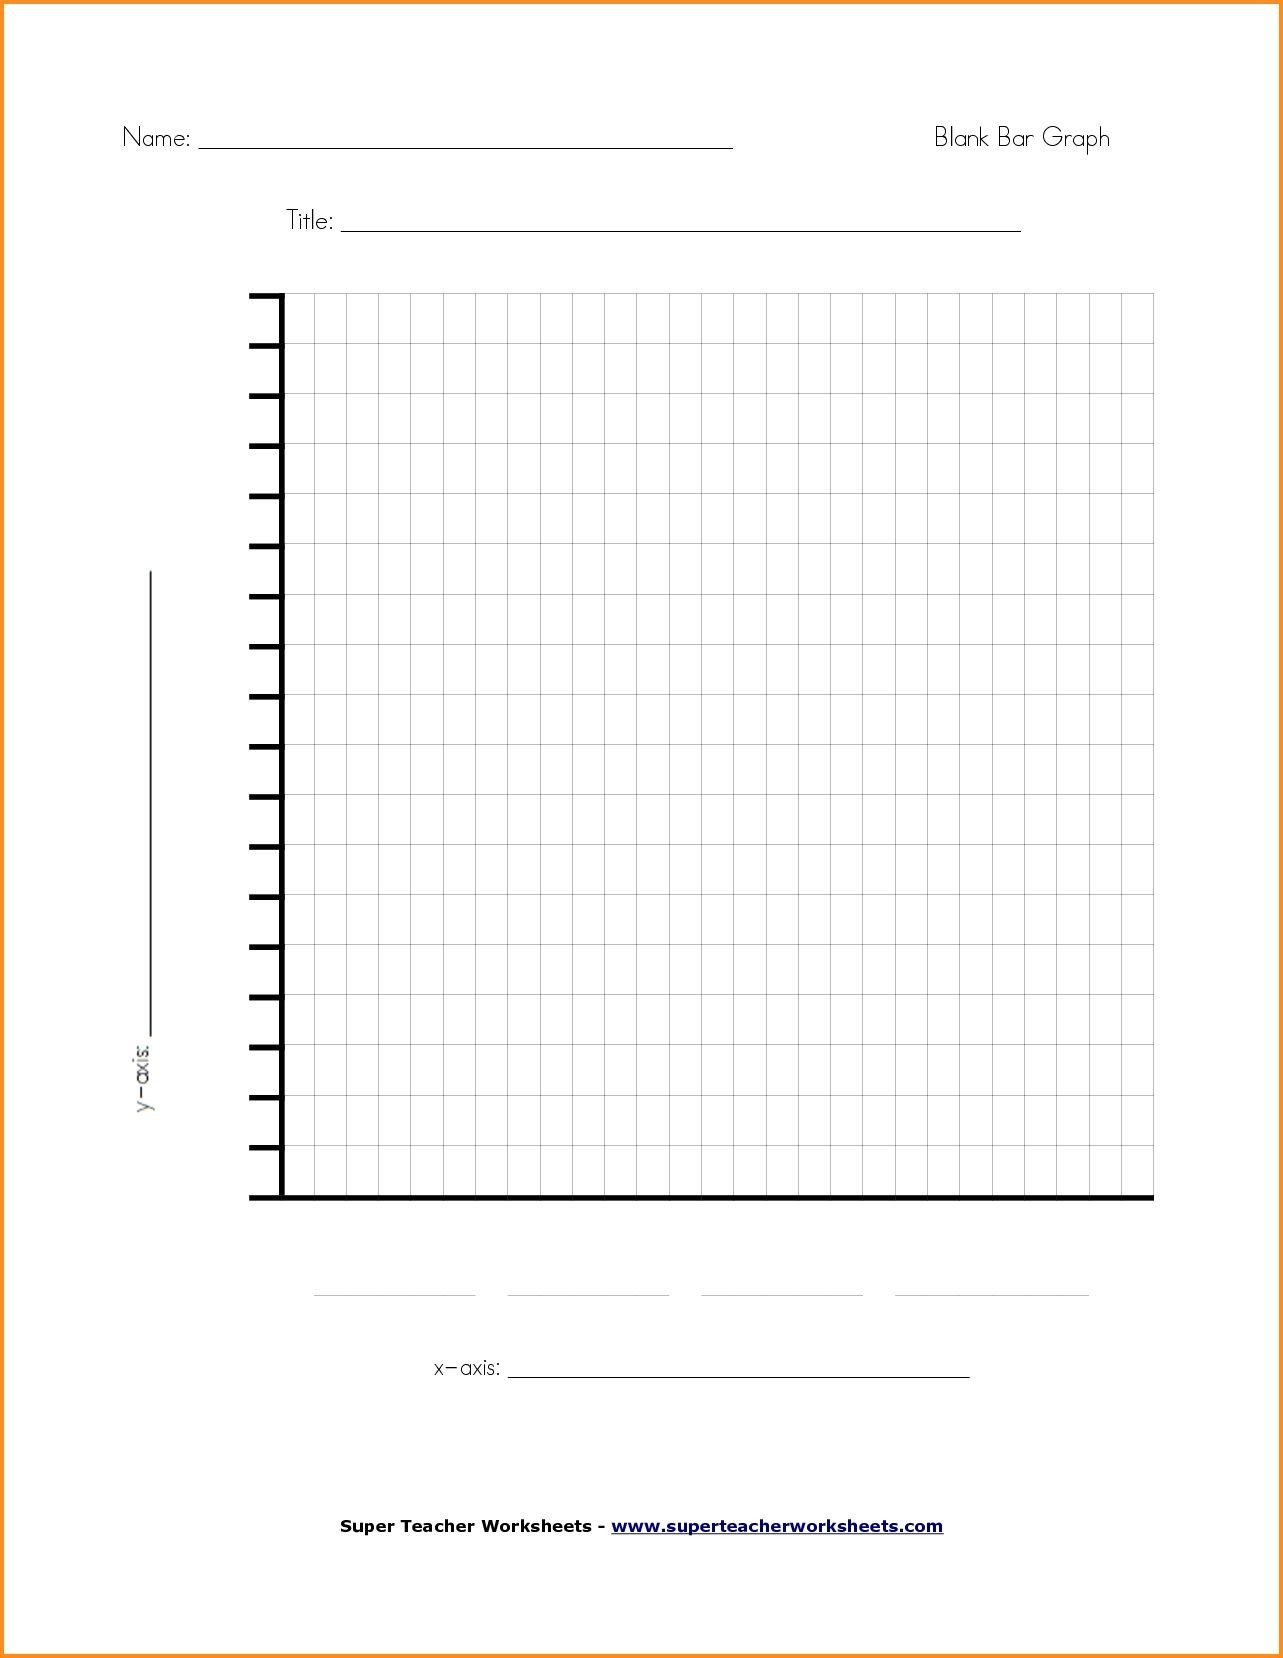 Line Graph Worksheets 5th Grade Blank Line Chart Template Writings and Essays Corner